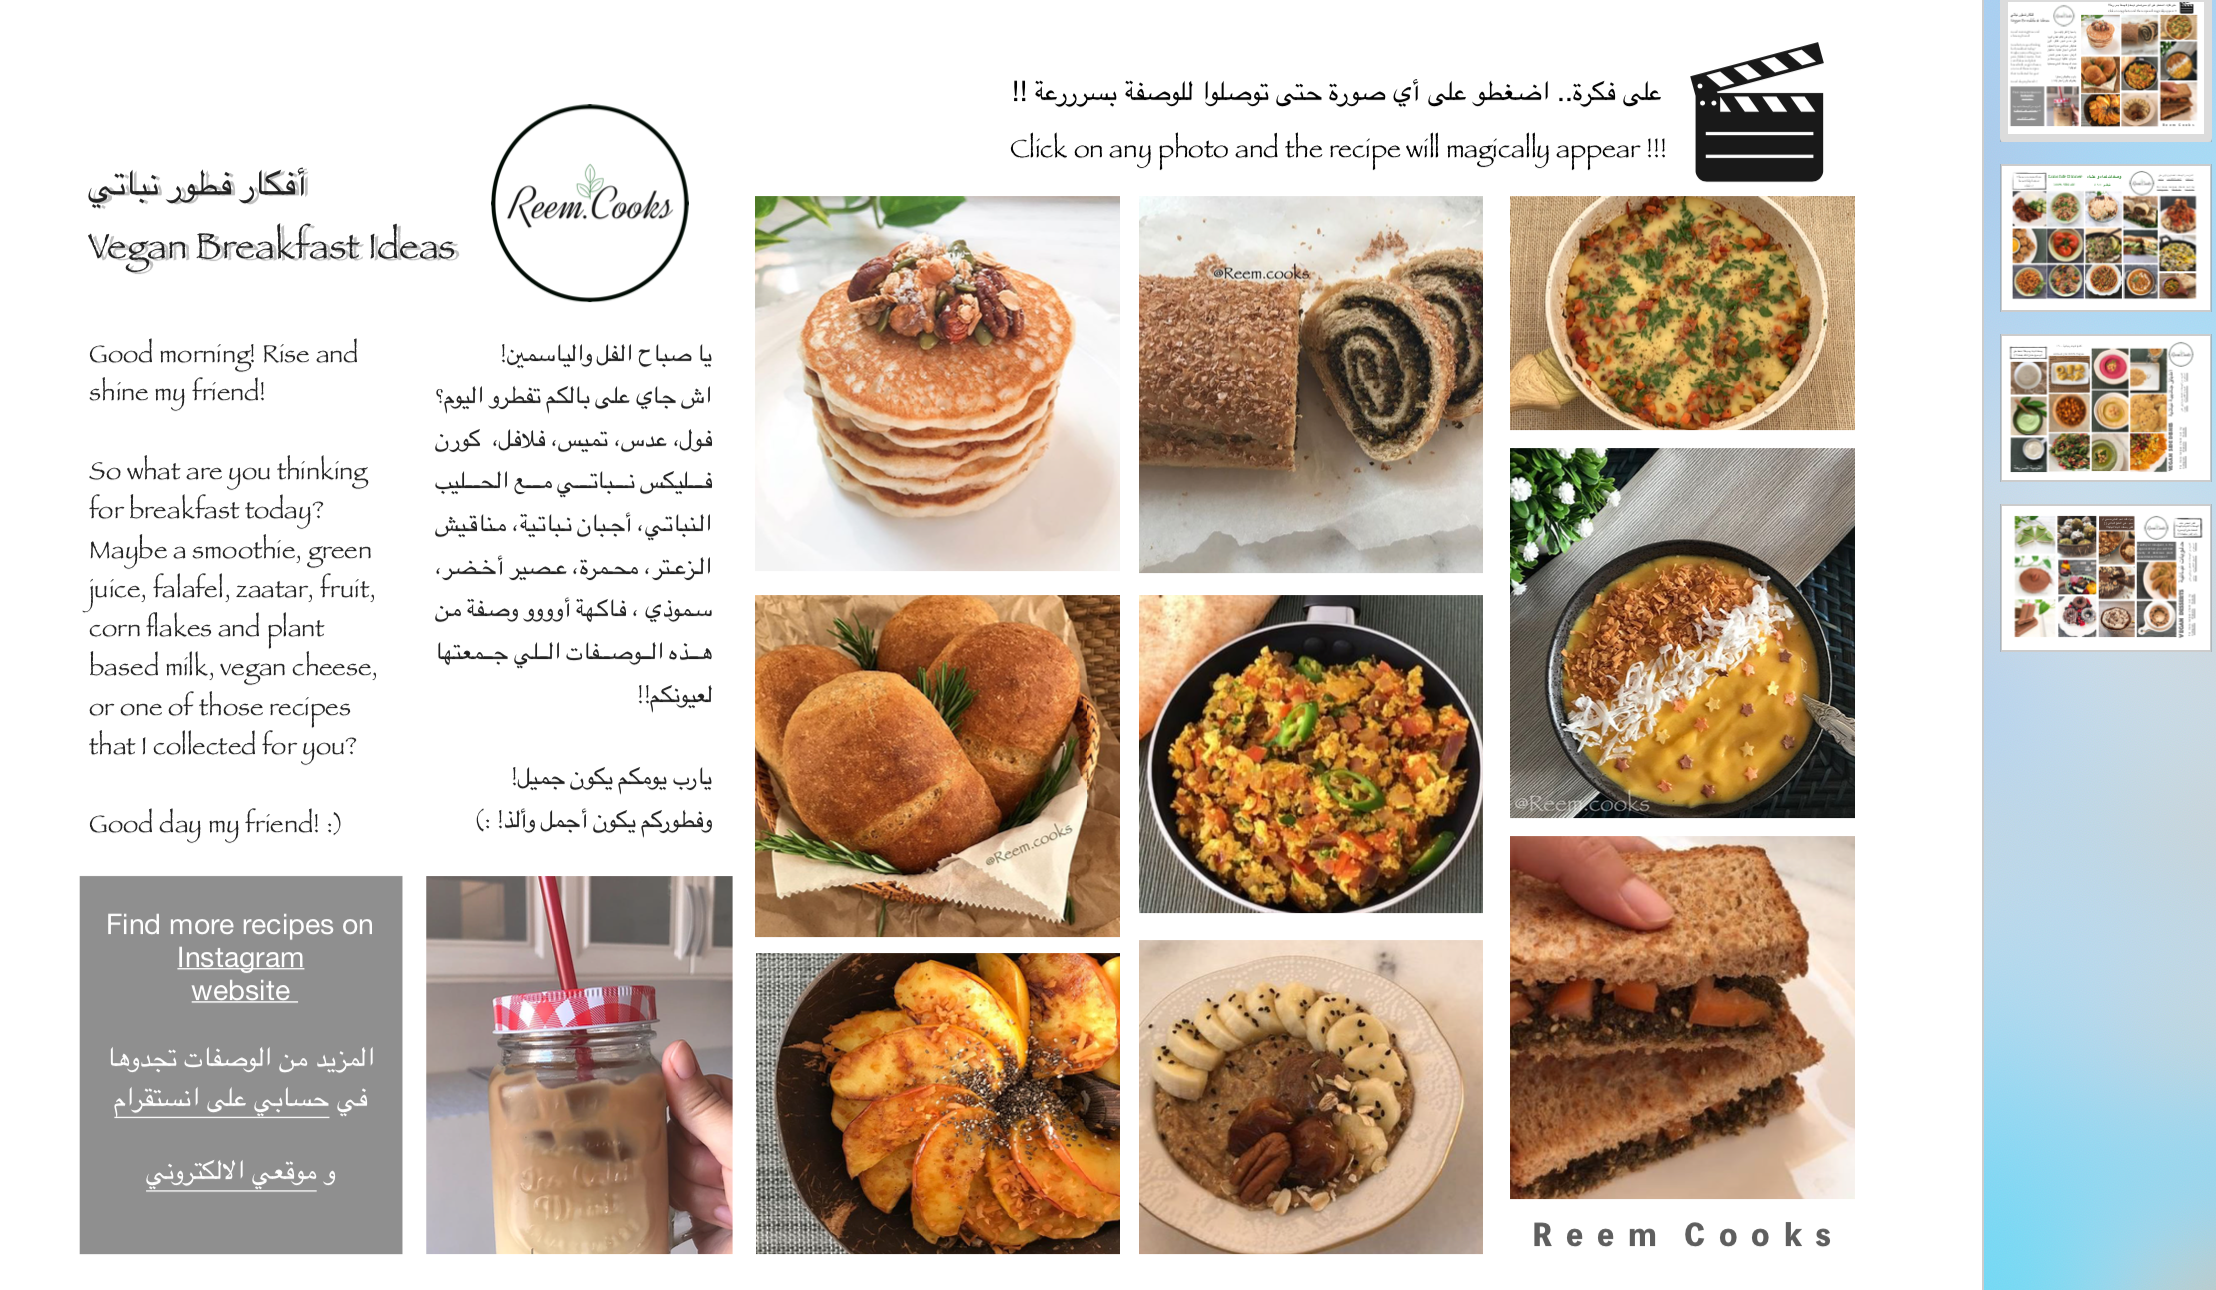 أفكار لوصفات نباتية يومية Ideas For Daily Vegan Recipes My Recipes Vegan Recipes Recipes